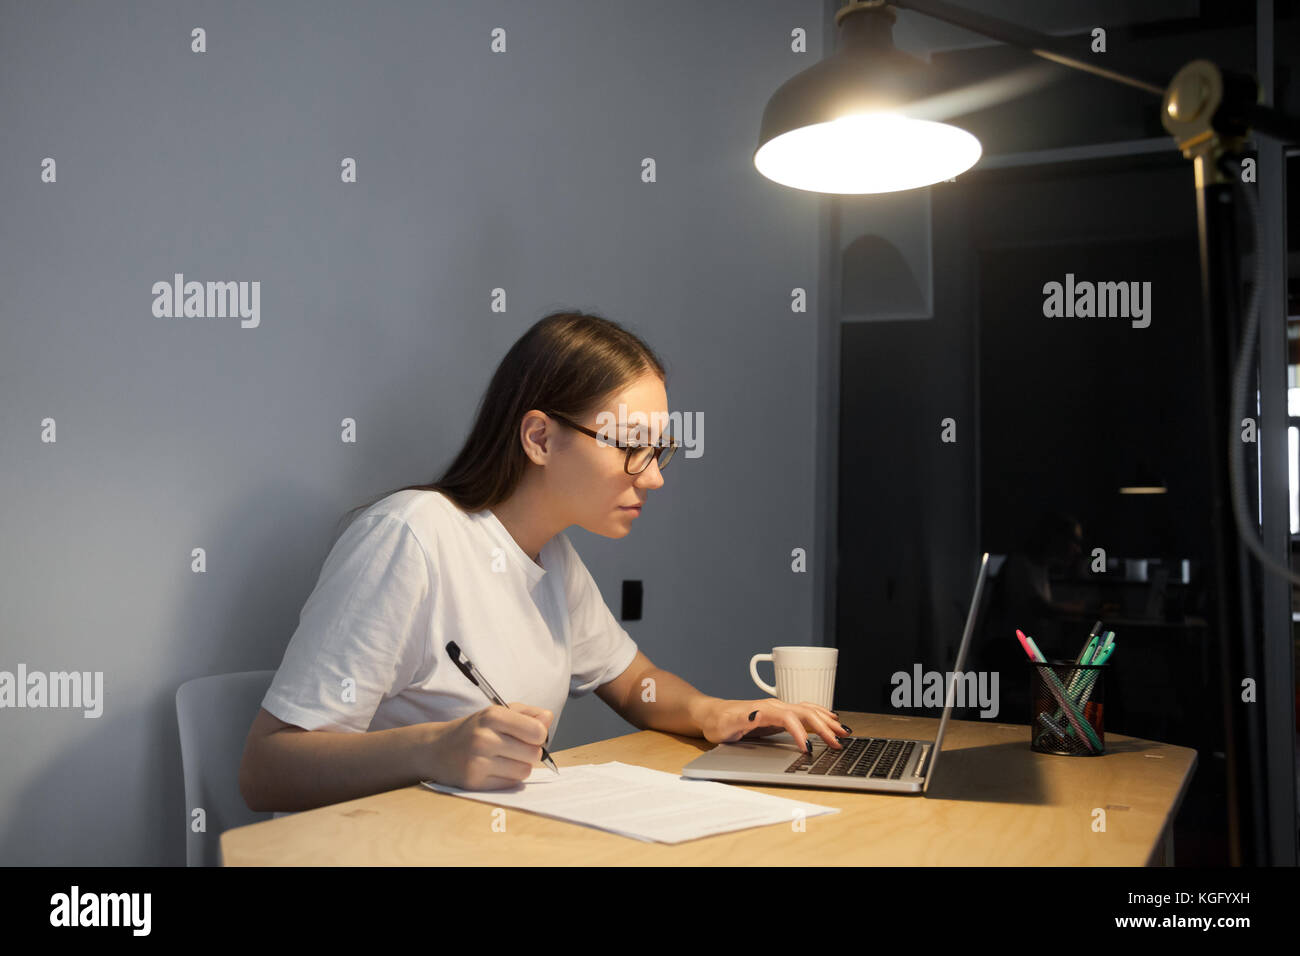 Young adult woman attentively reading contract, scientific article, chooses items to buy on laptop computer, making - Stock Image